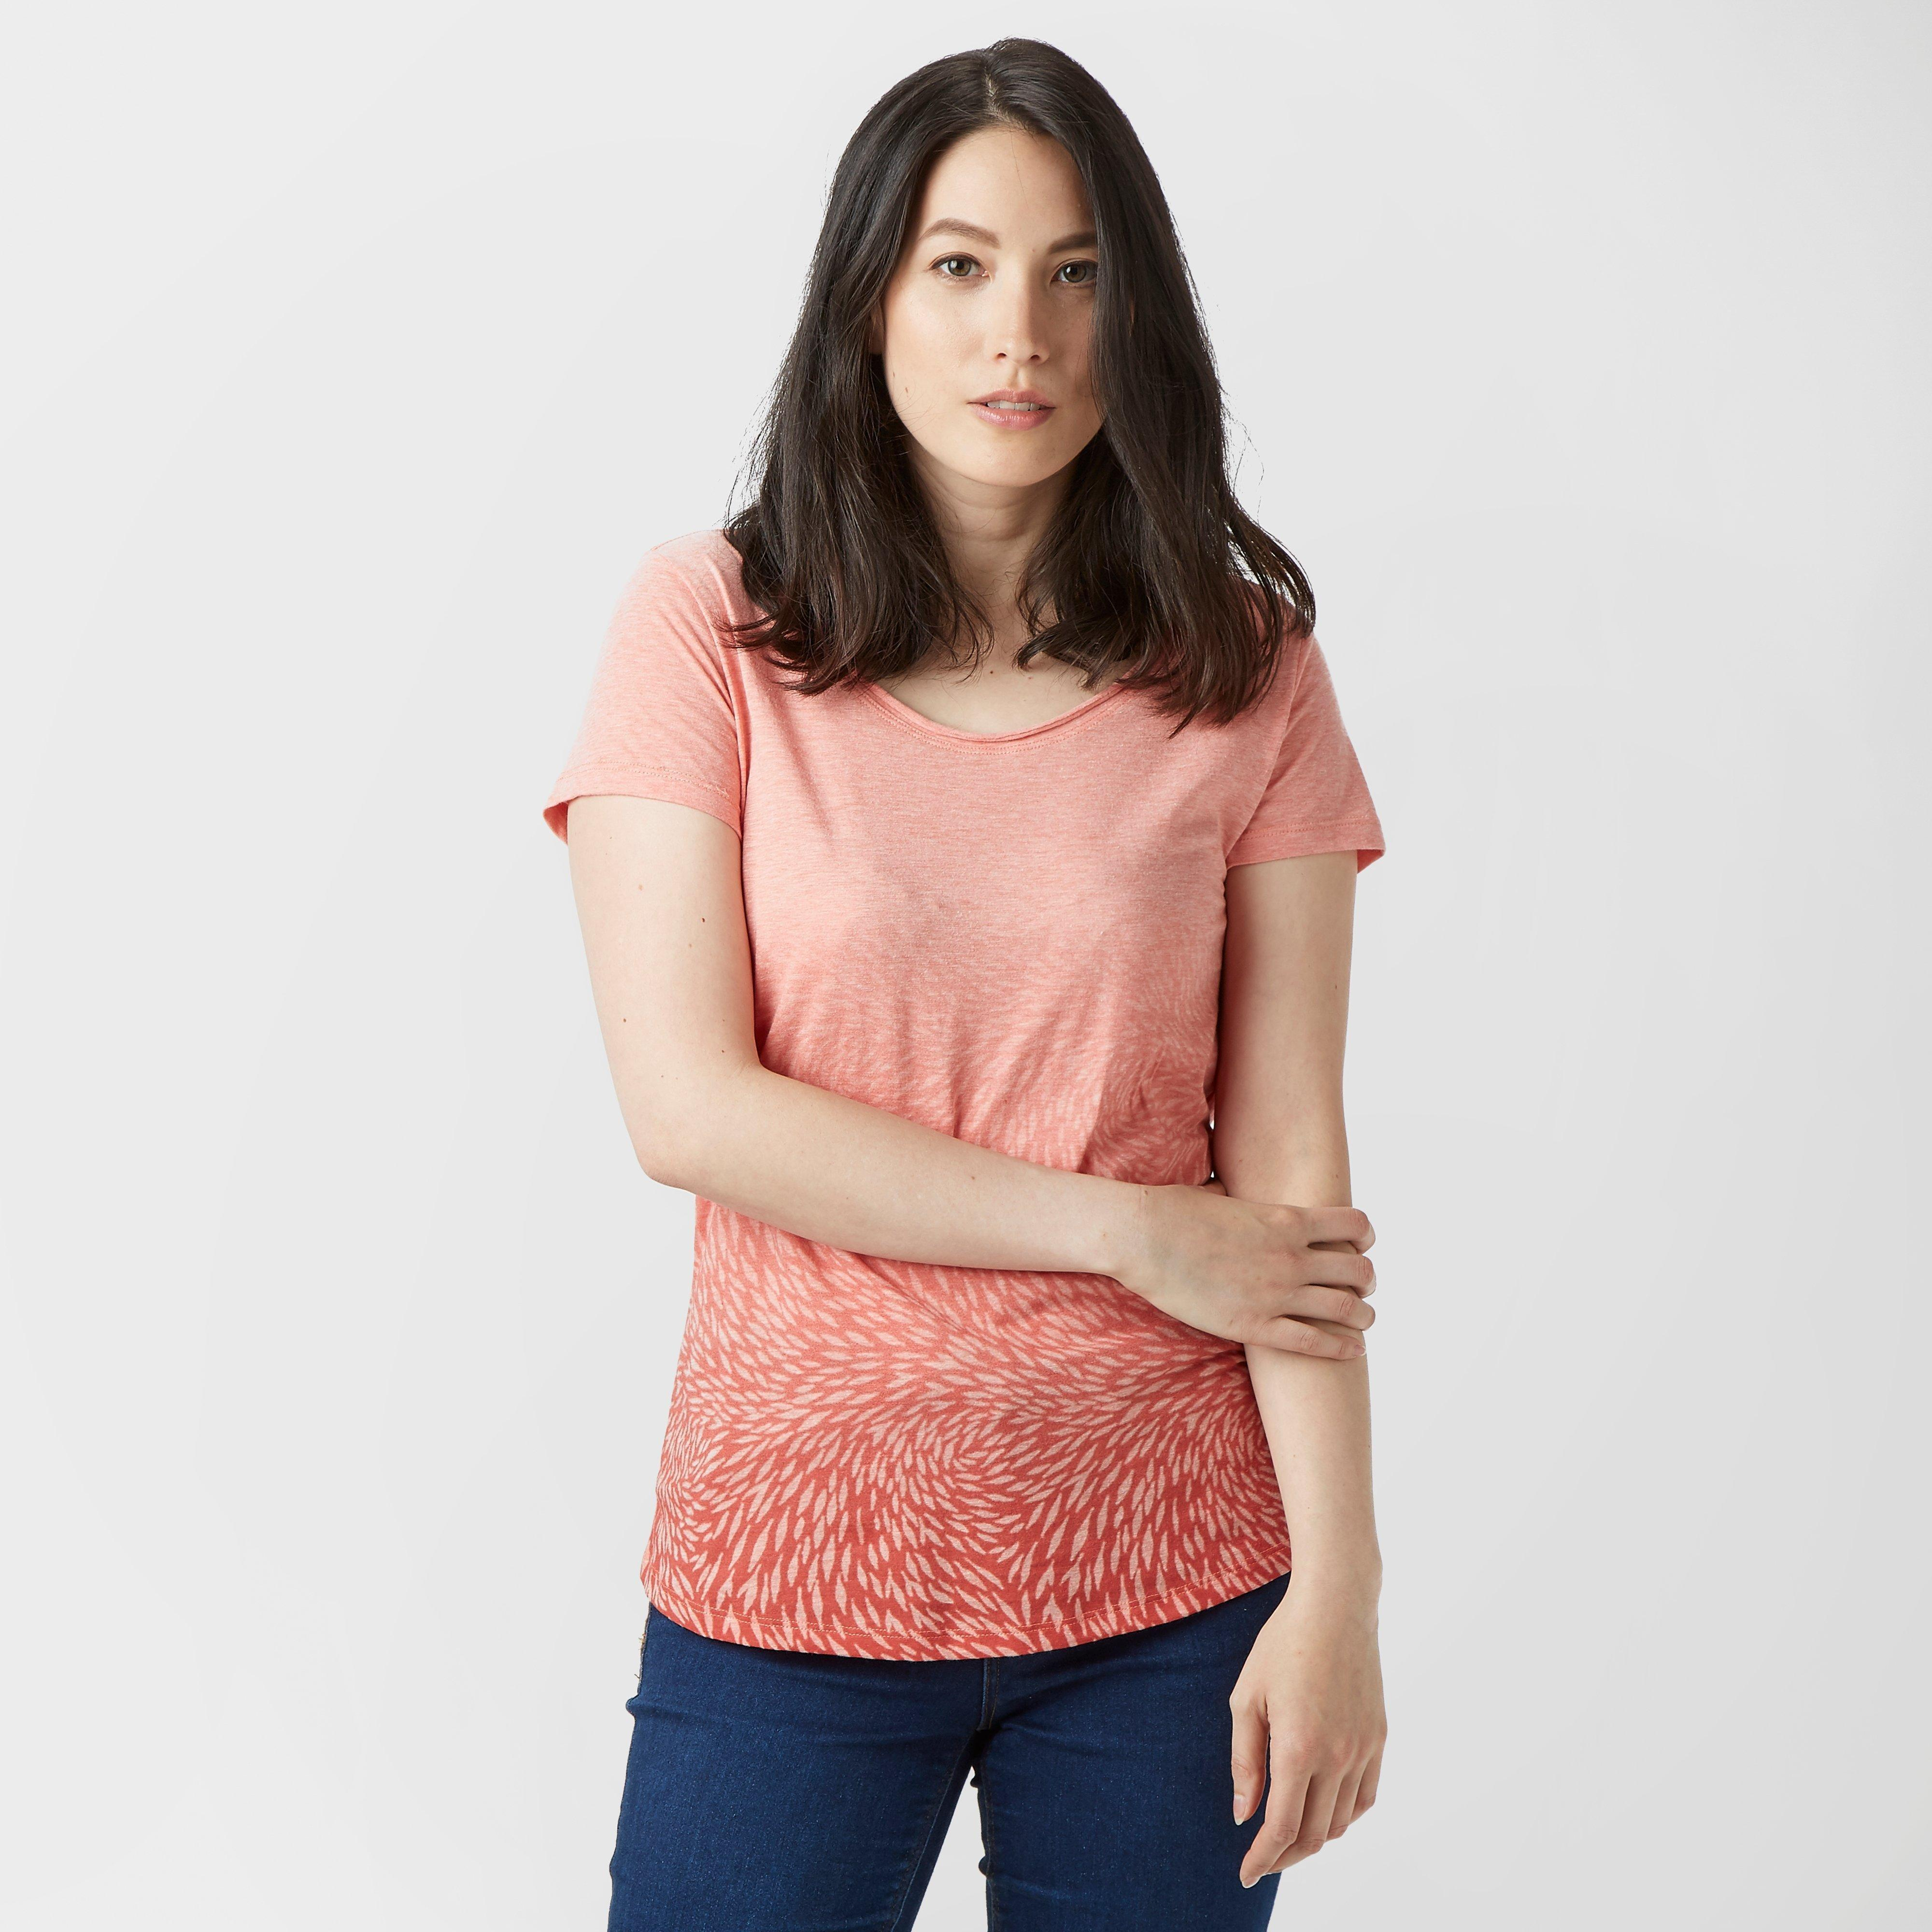 Columbia Columbia Womens Ocean Face Short Sleeve T-Shirt - Coral, Coral